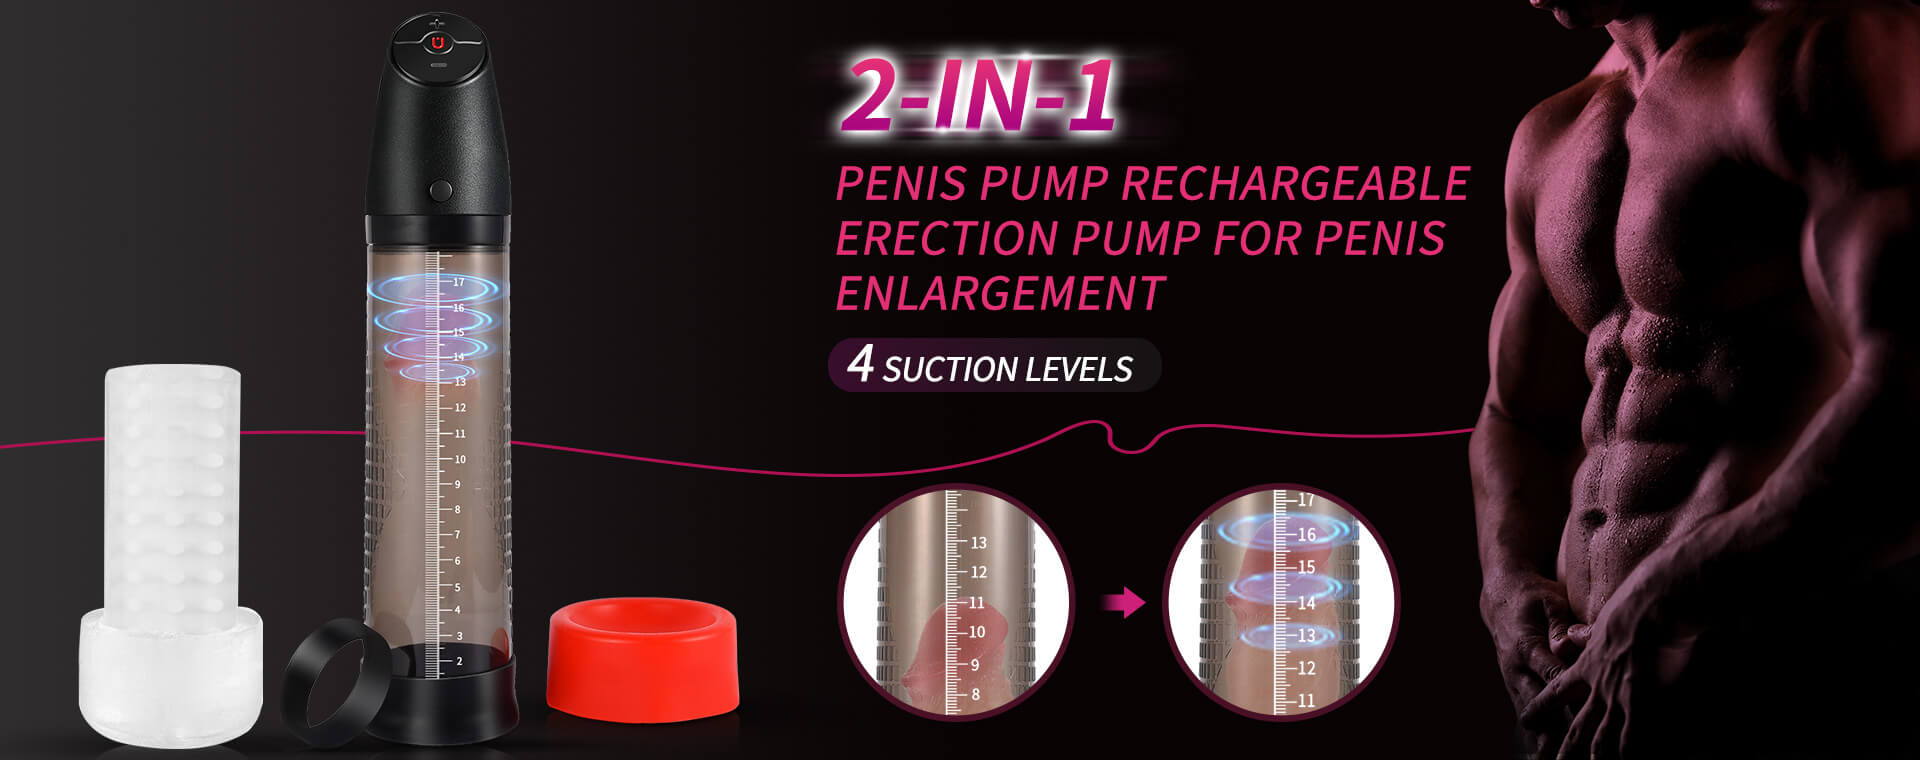 Utimi-Sex-Toys-Penis-Pump-Electric-Vacuum-Pumps-Silicone-4-Suction-Levels-Free-Shipping-Discreet-Package-Discount-Deals-Sales